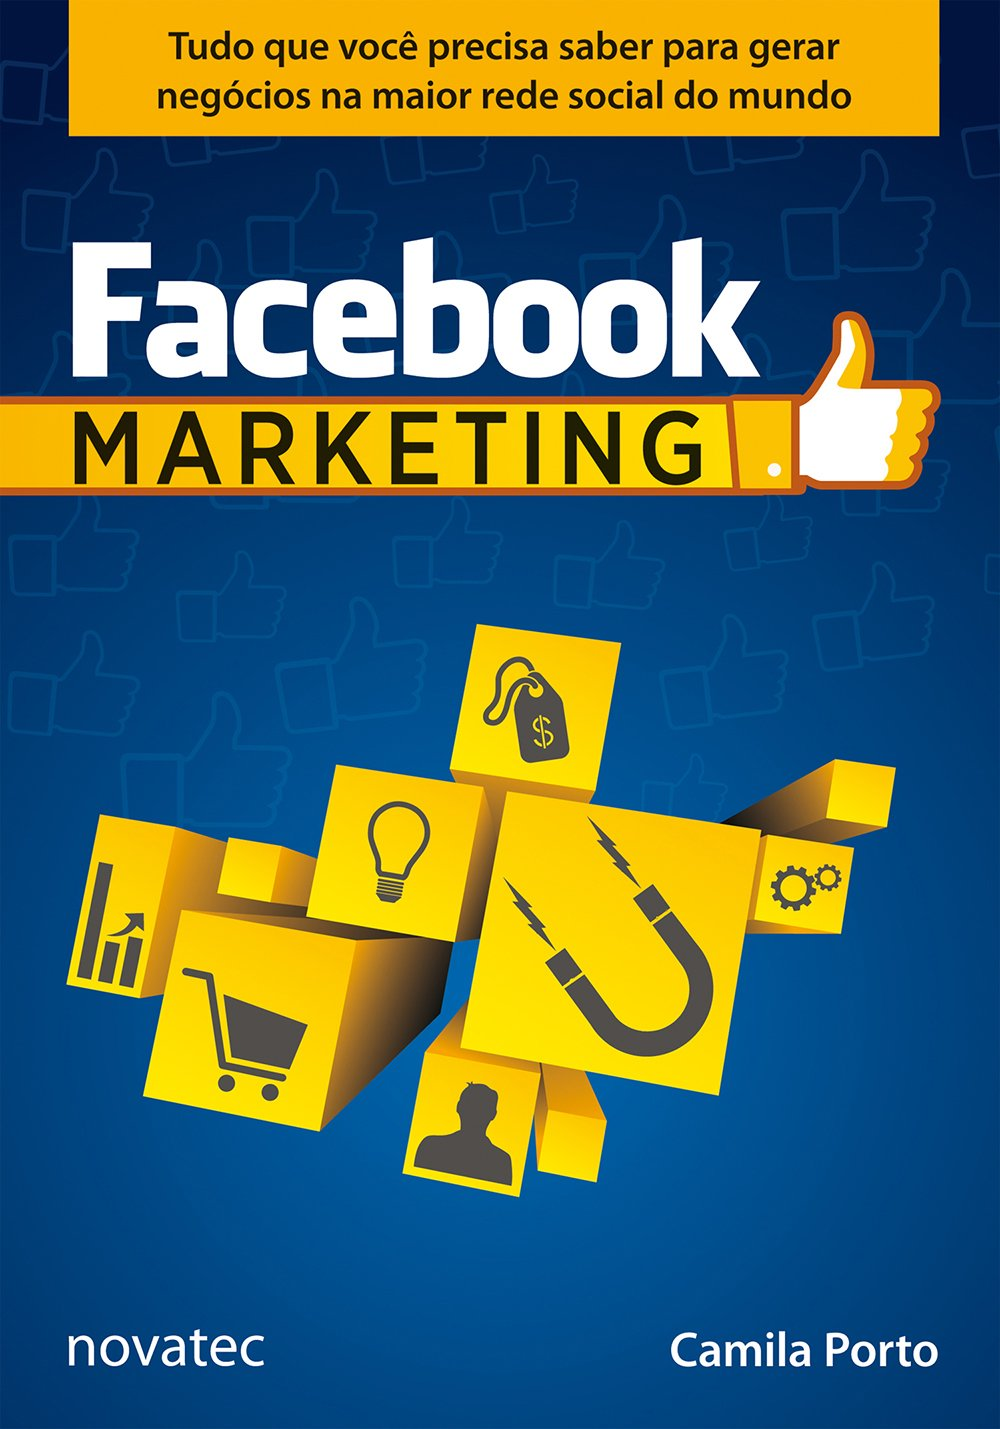 Facebook Marketing | Camila Porto